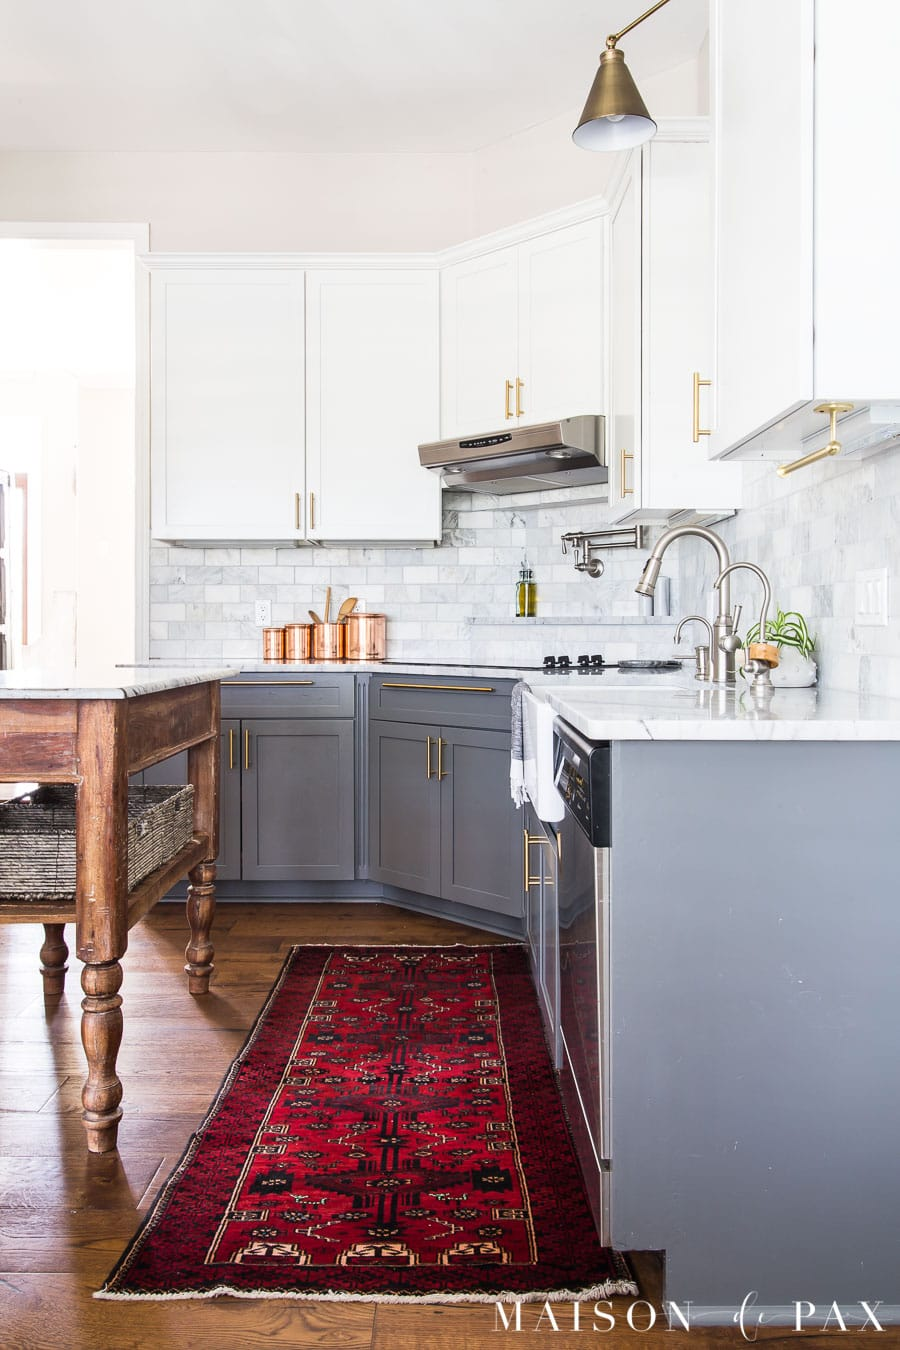 red vintage runner by kitchen sink and copper canisters on marble counters | Maison de Pax